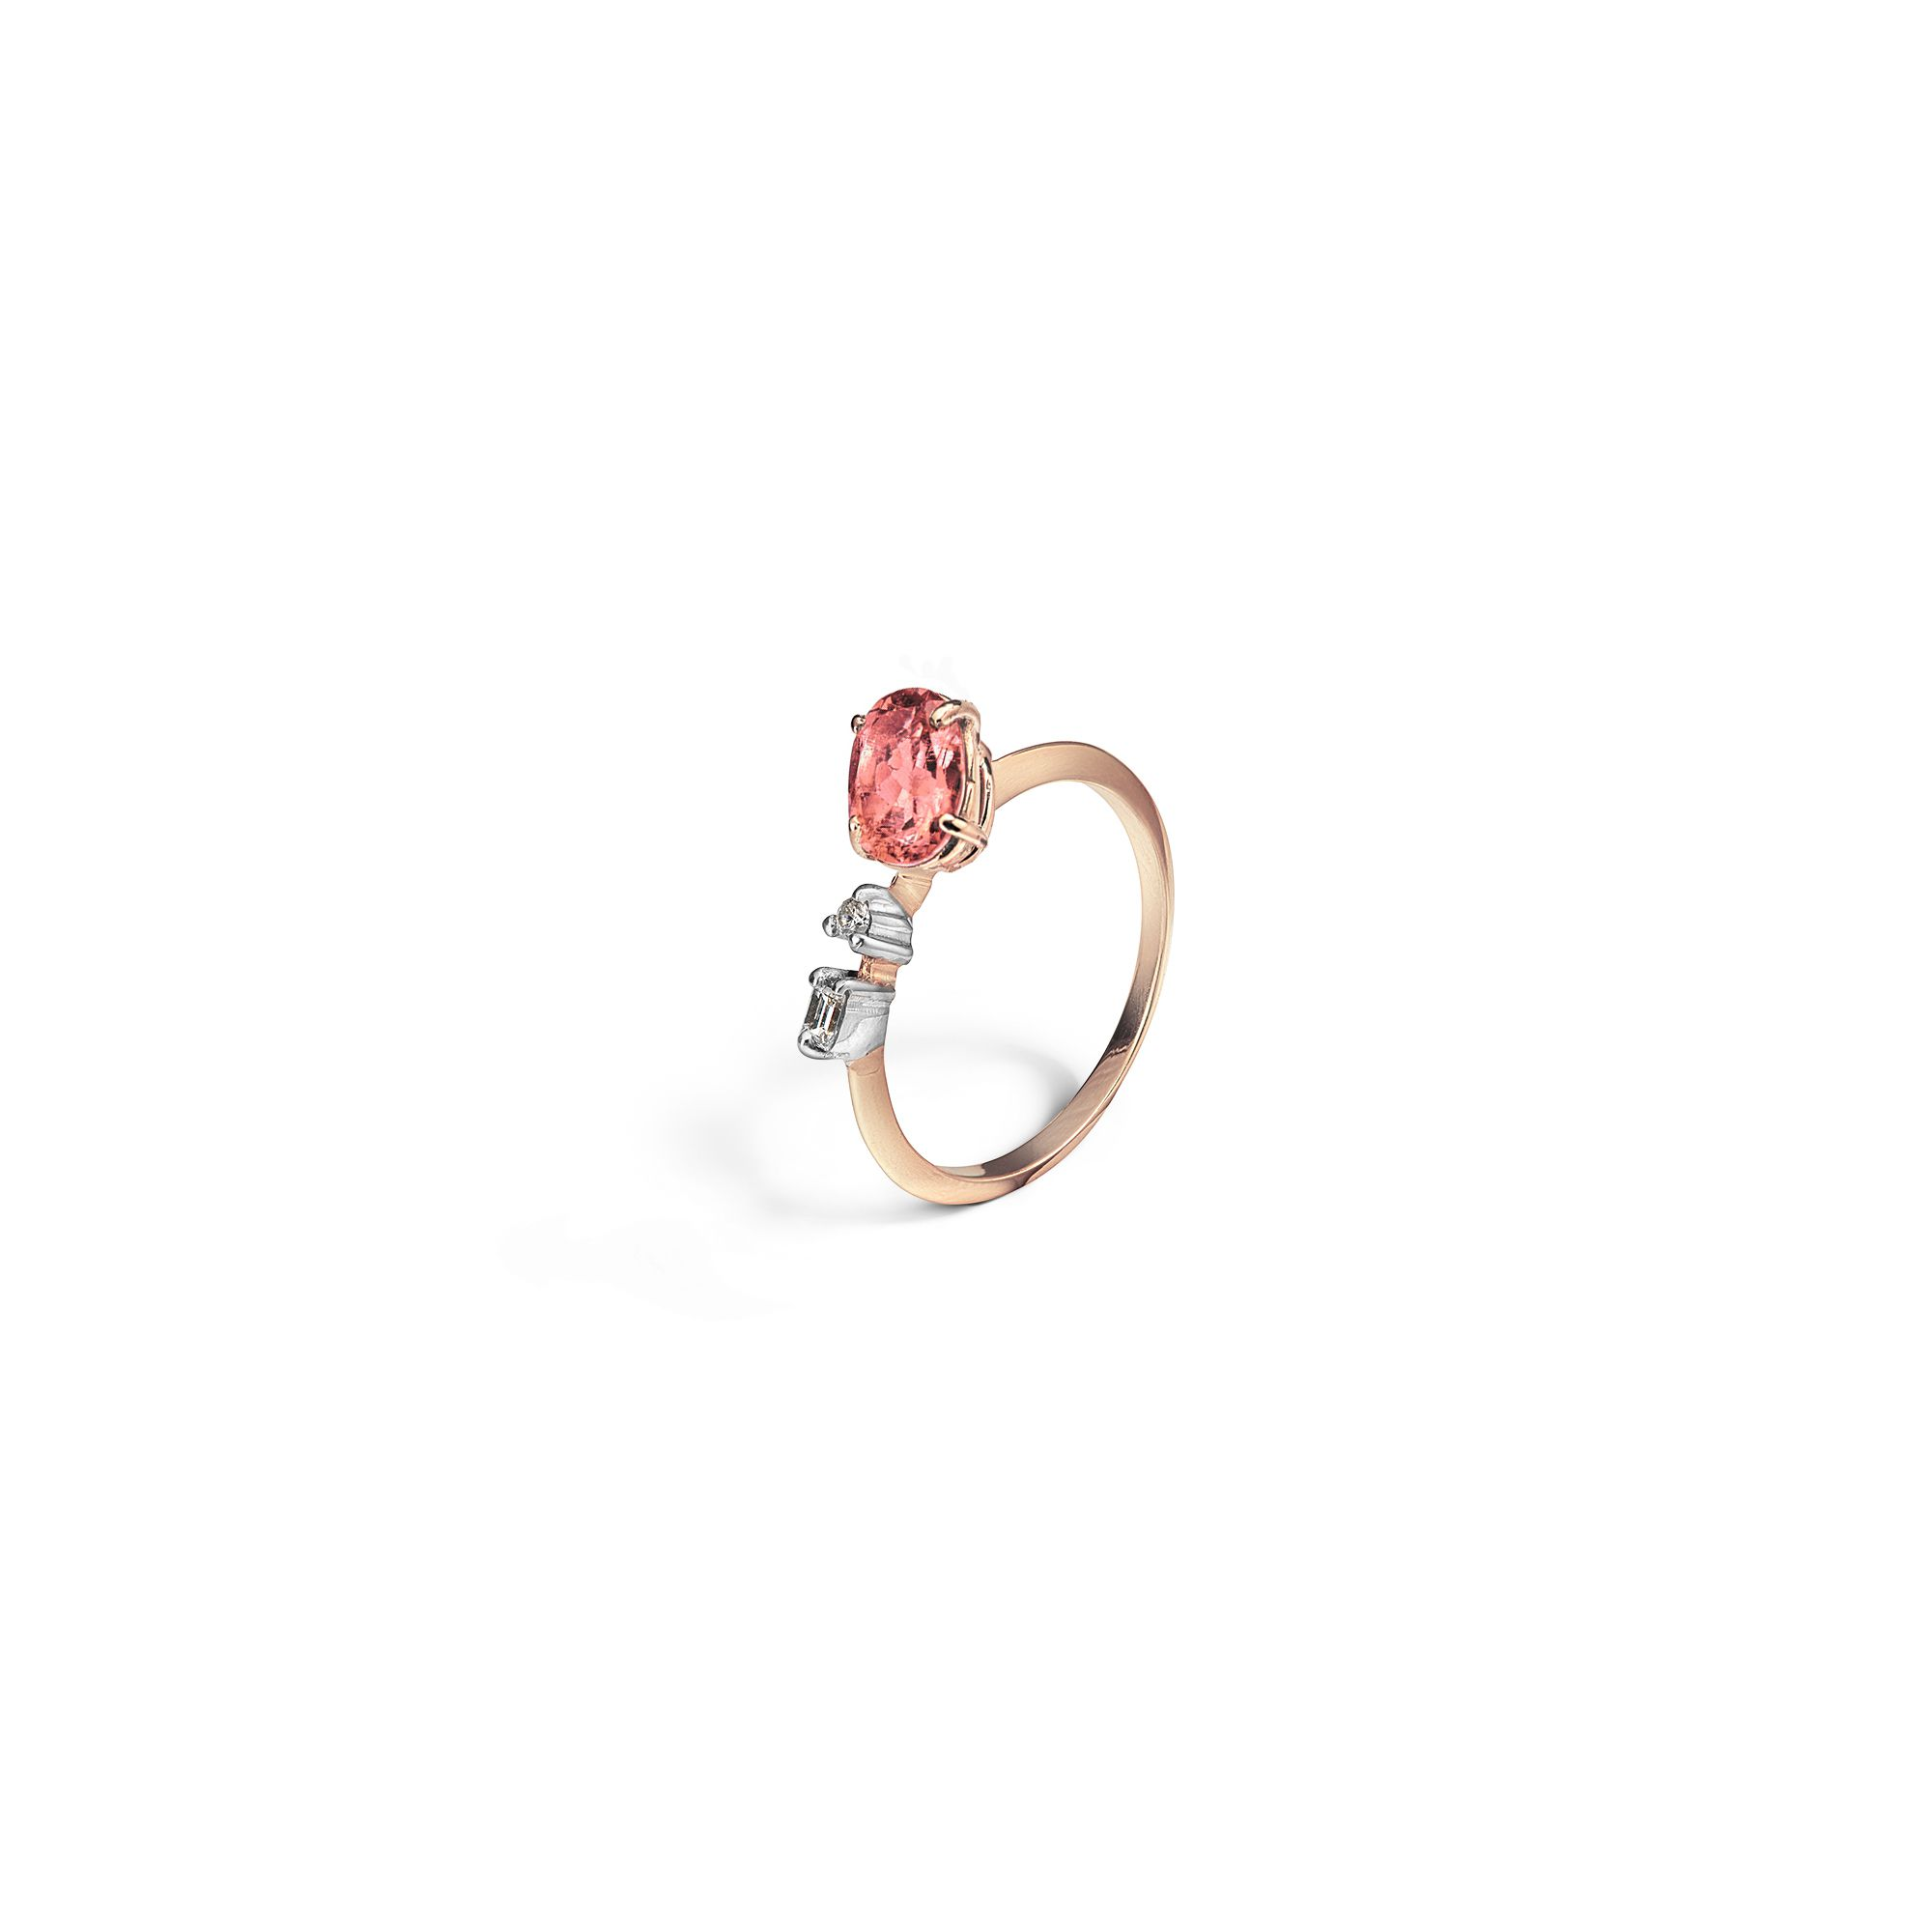 'Balance' ring with tourmaline Rose gold ring with diamonds and pink tourmaline